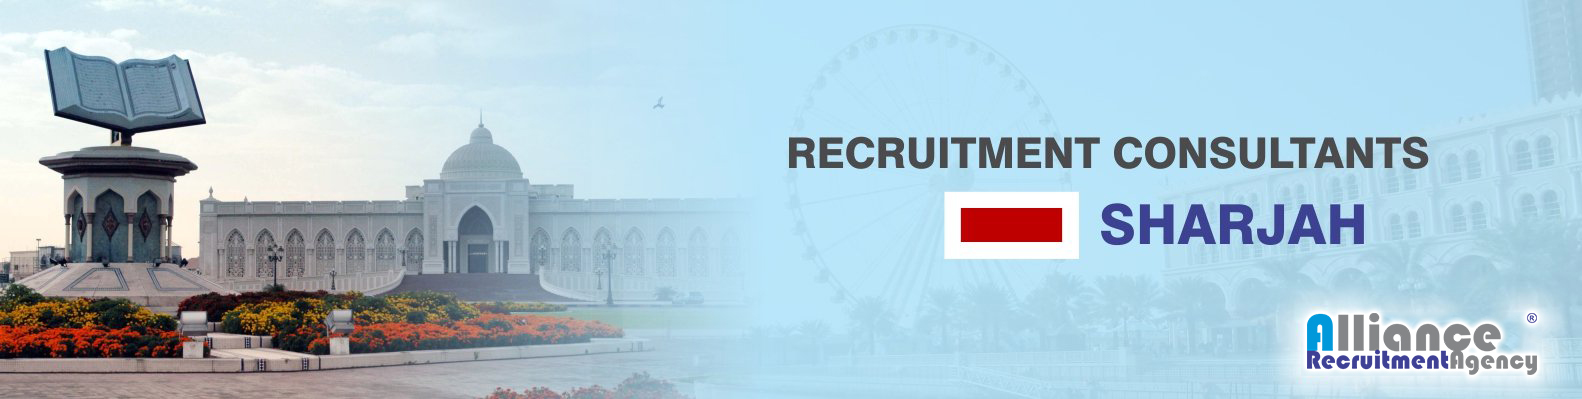 sharjah recruitment agency